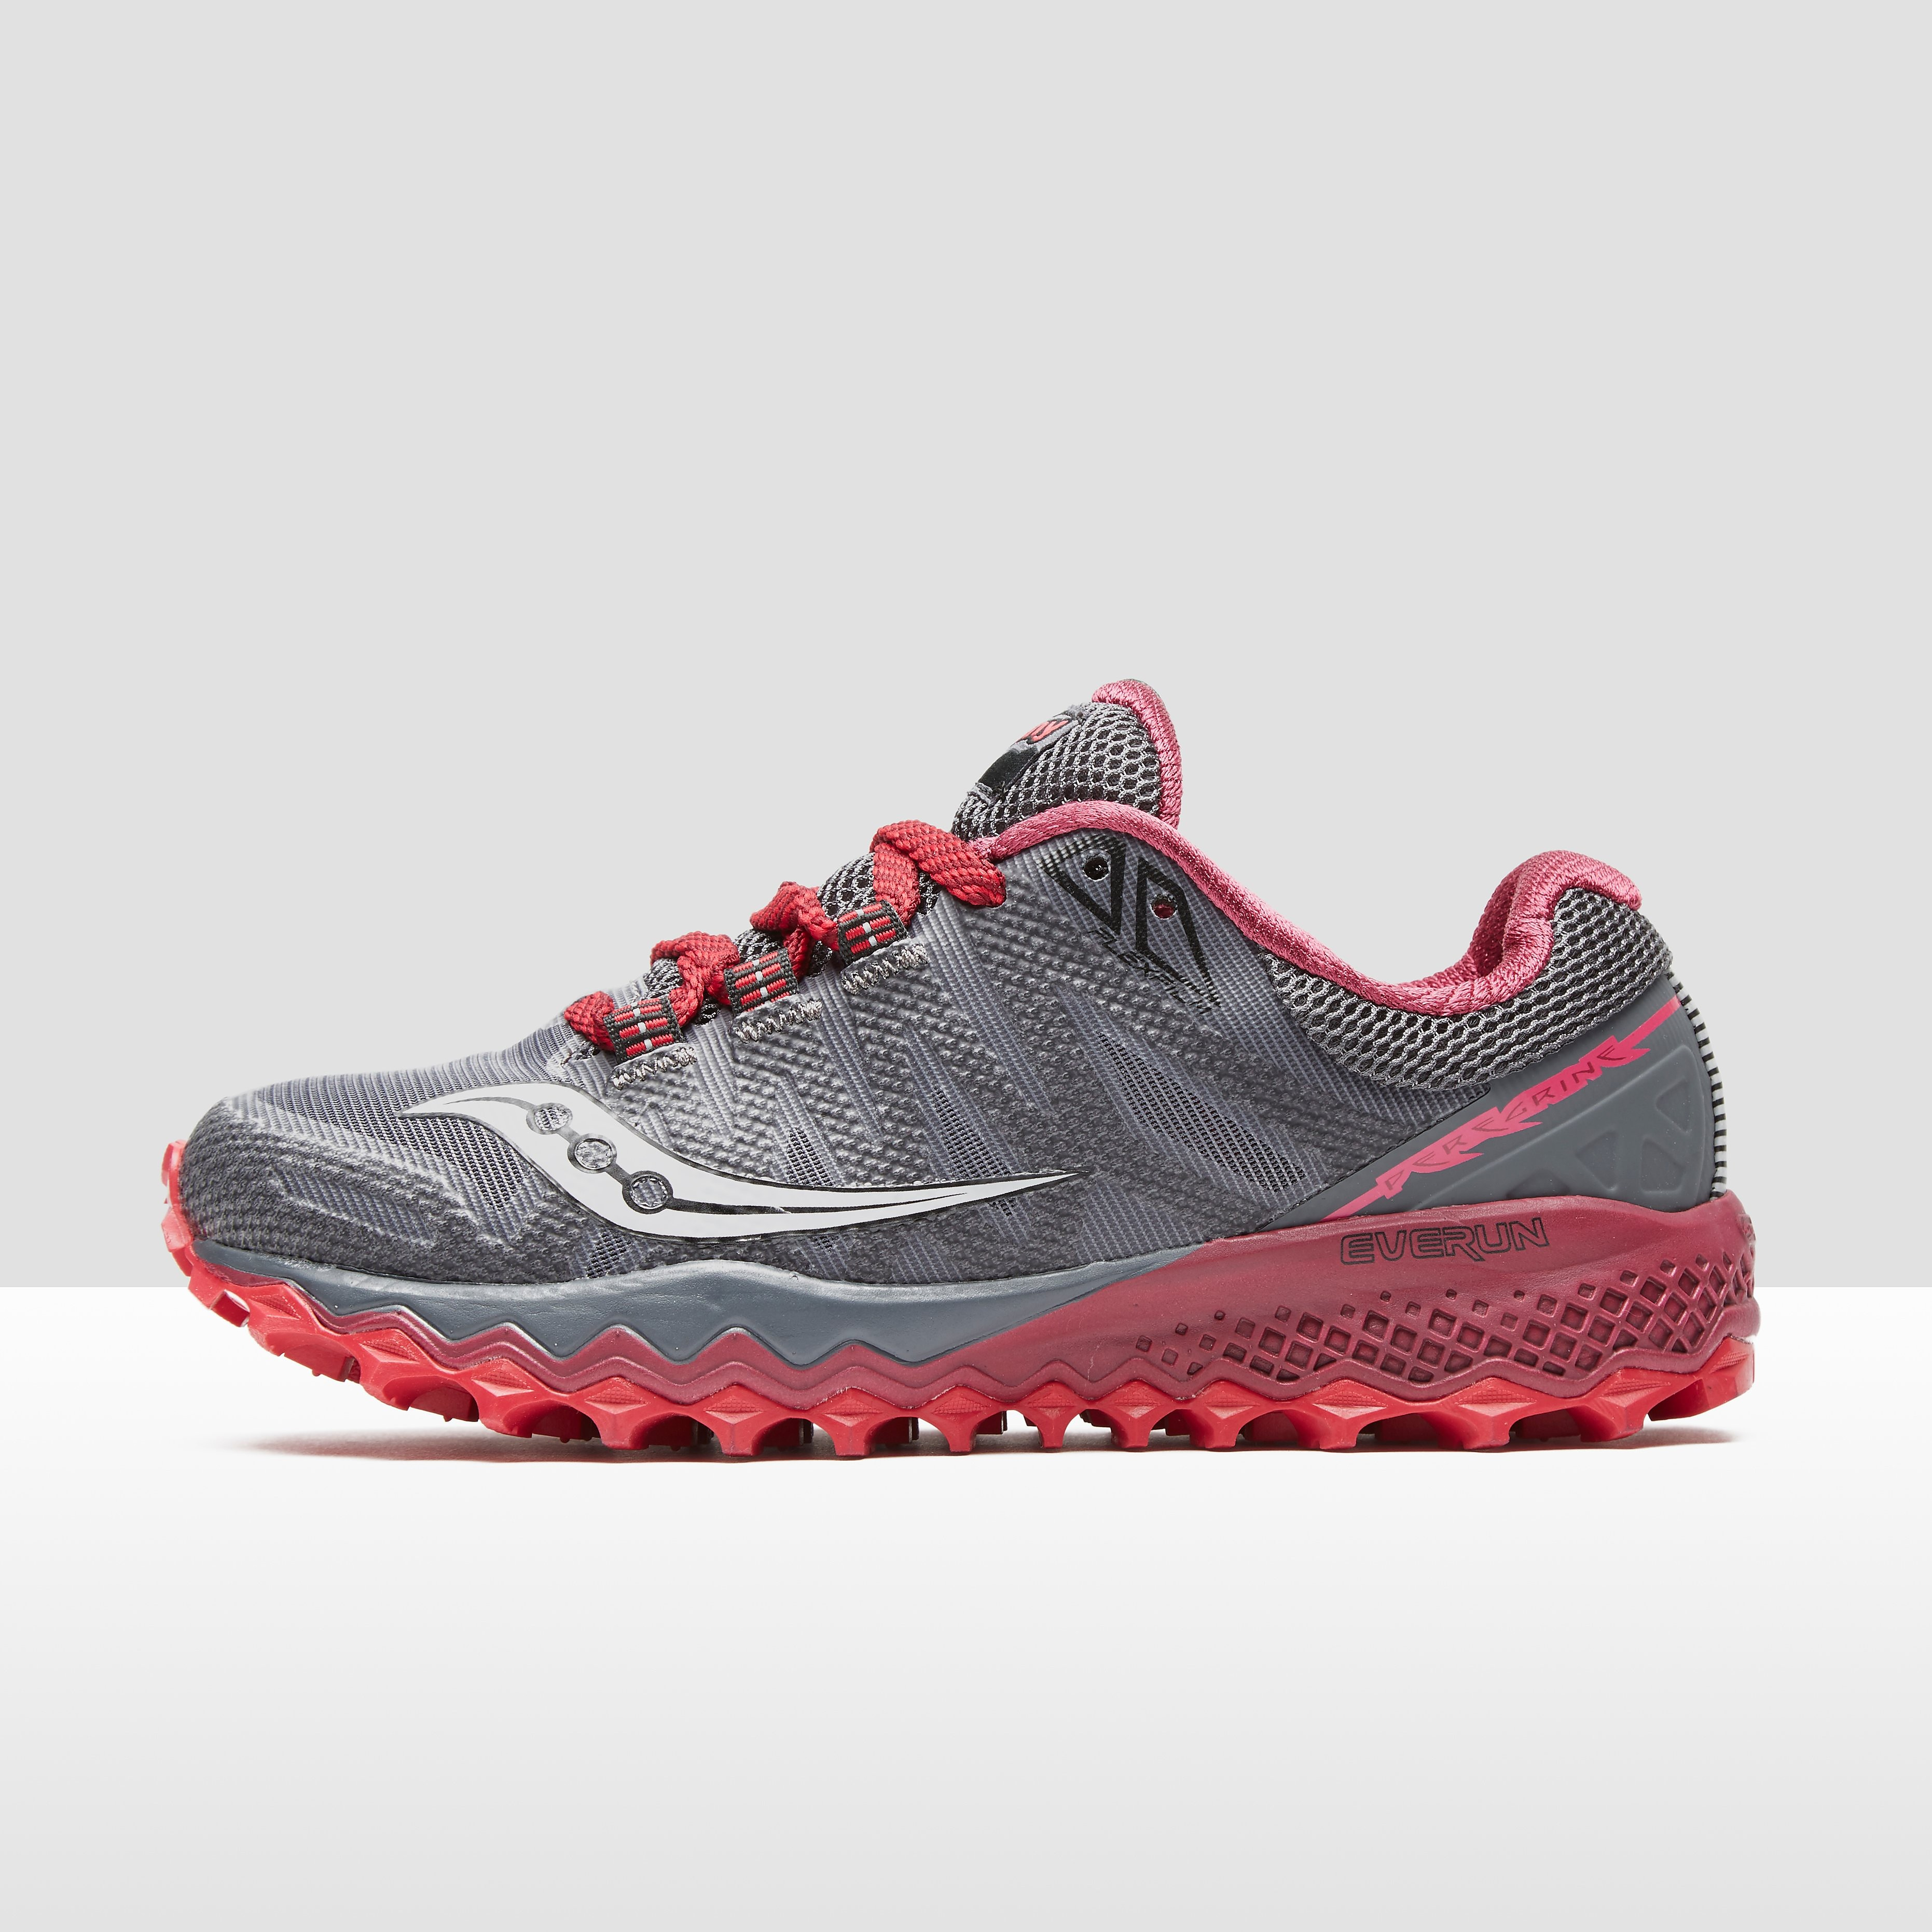 Saucony Peregrine 7 Women's Trail Running Shoes